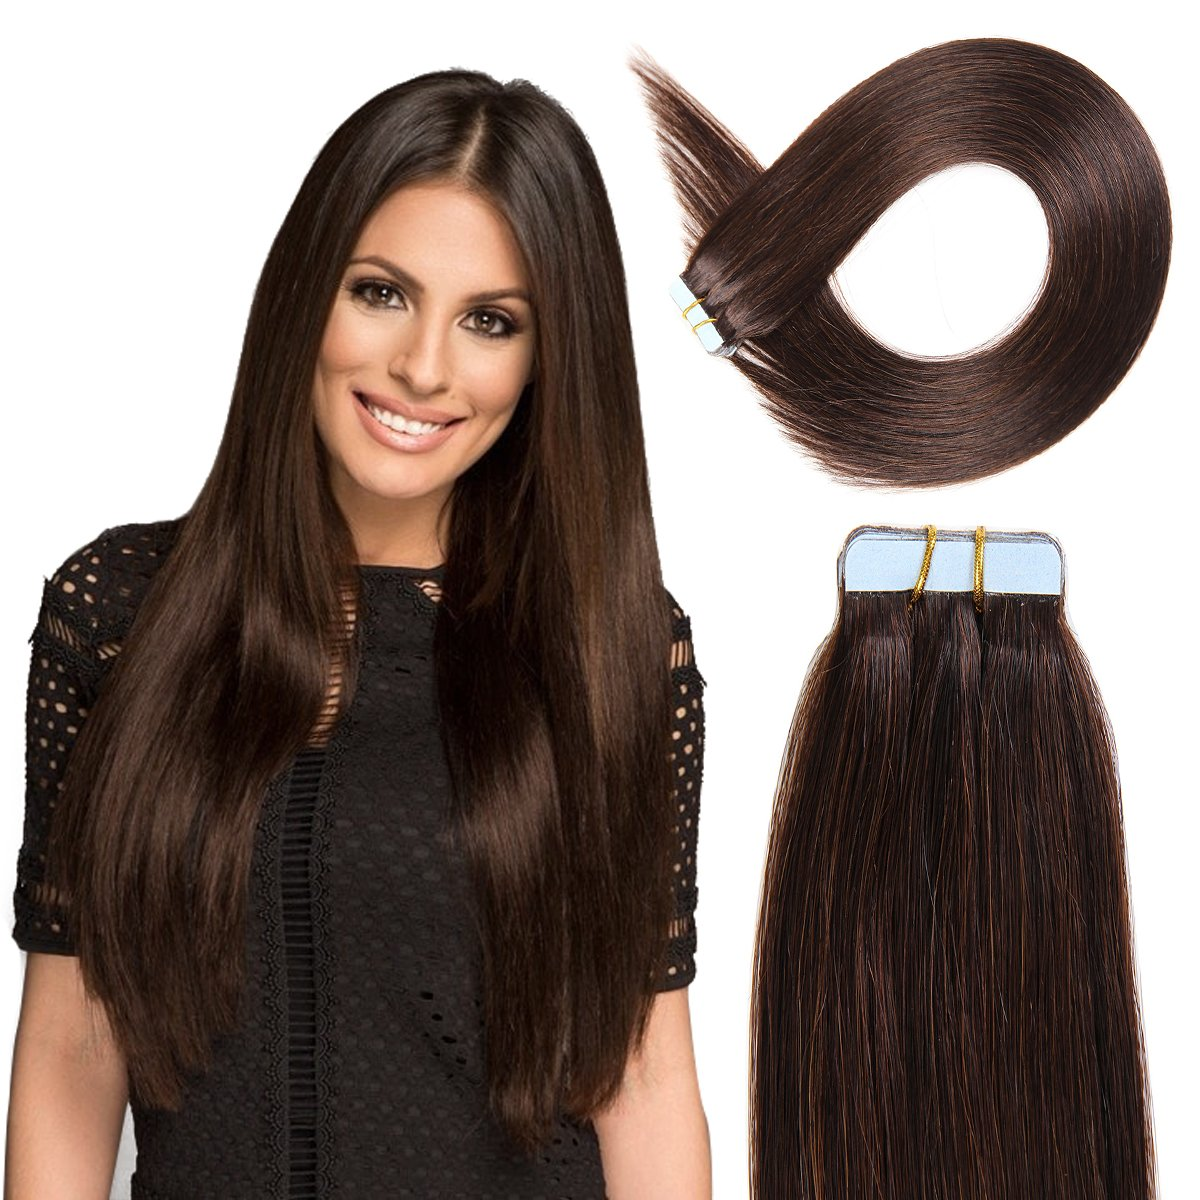 Tape in Hair Extensions Human Hair 20 inch 50g/pack 20pcs Seamless Skin Weft Remy Straight Hair 2# Dark Brown ... by BEAUTY ON LINE